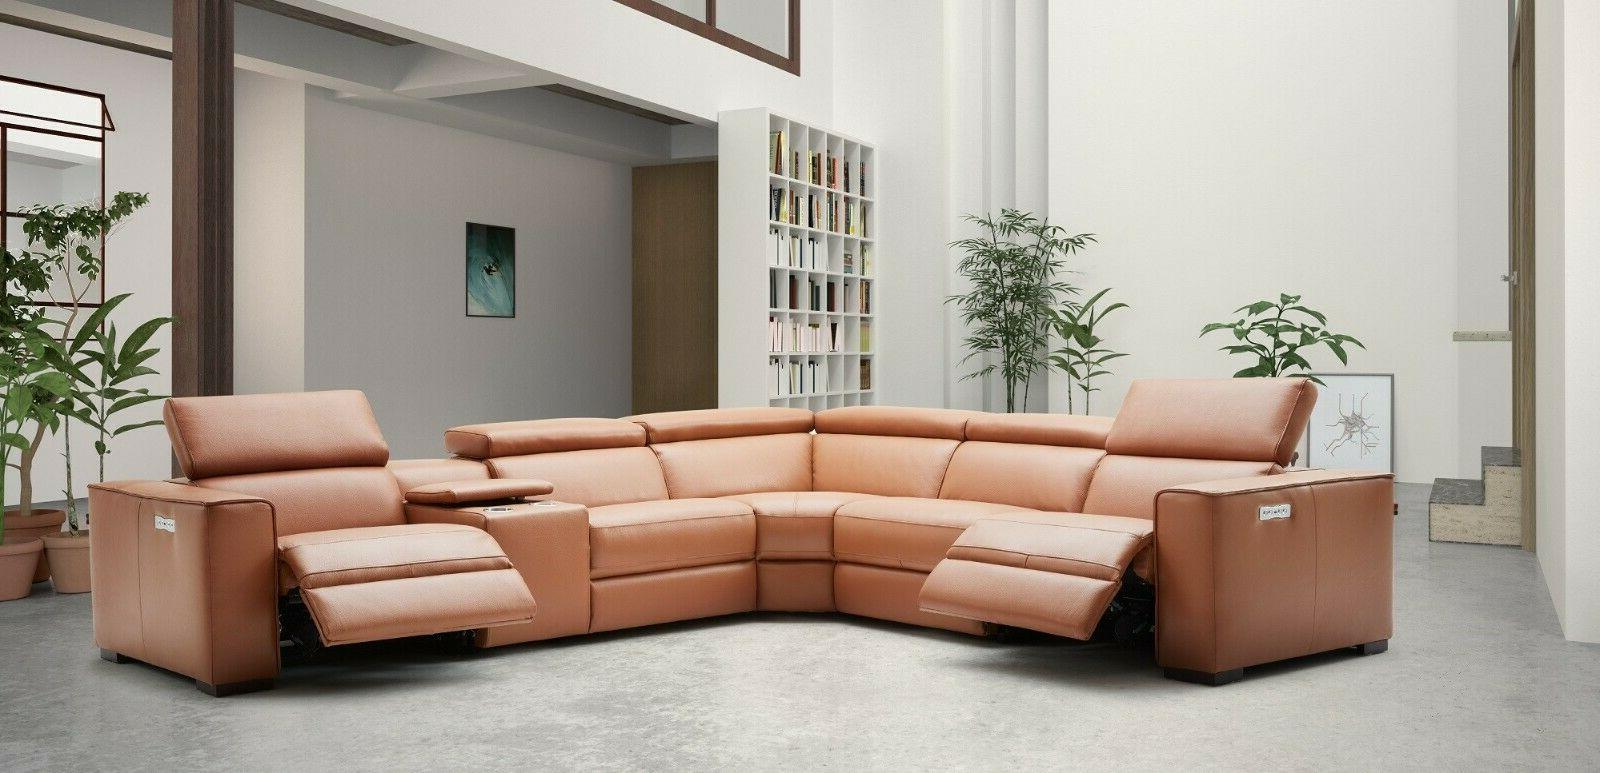 J&M Furniture Top Grain Leather Sectional Sofa, 6